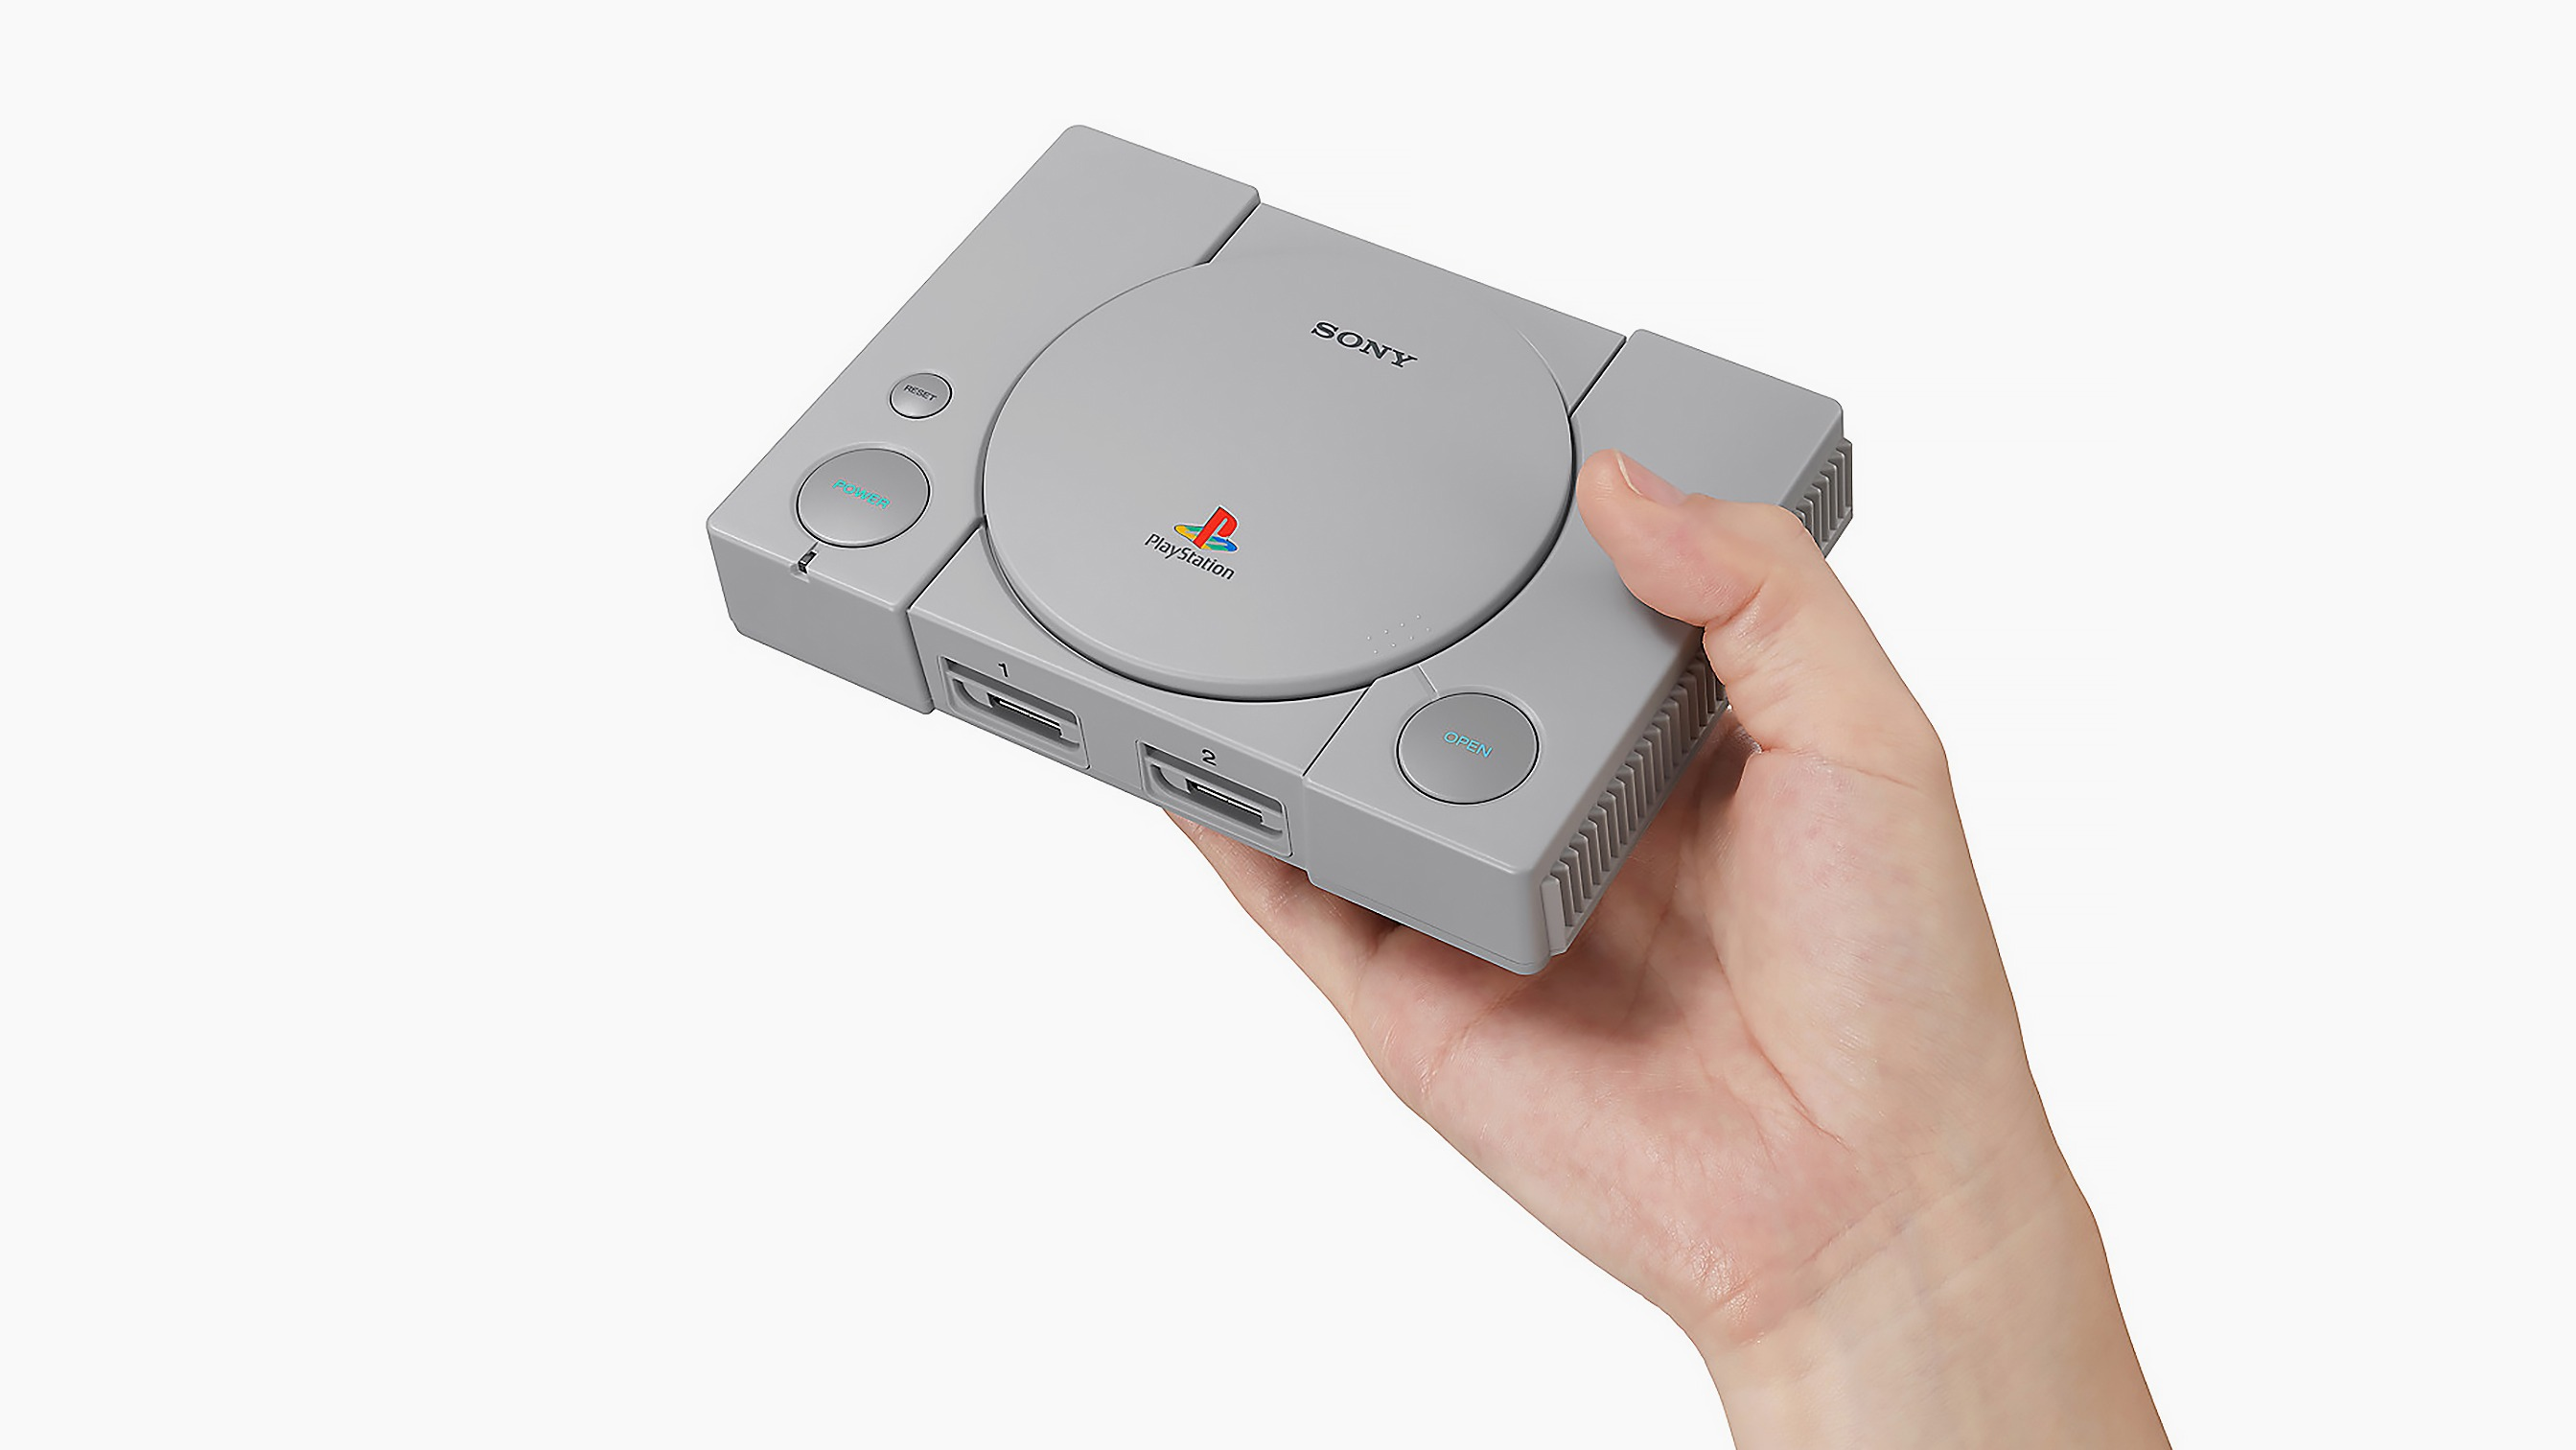 Promotional advertisement for the Playstation Classic, a an aesthetically similar but miniaturized version of the original Playstation game console.